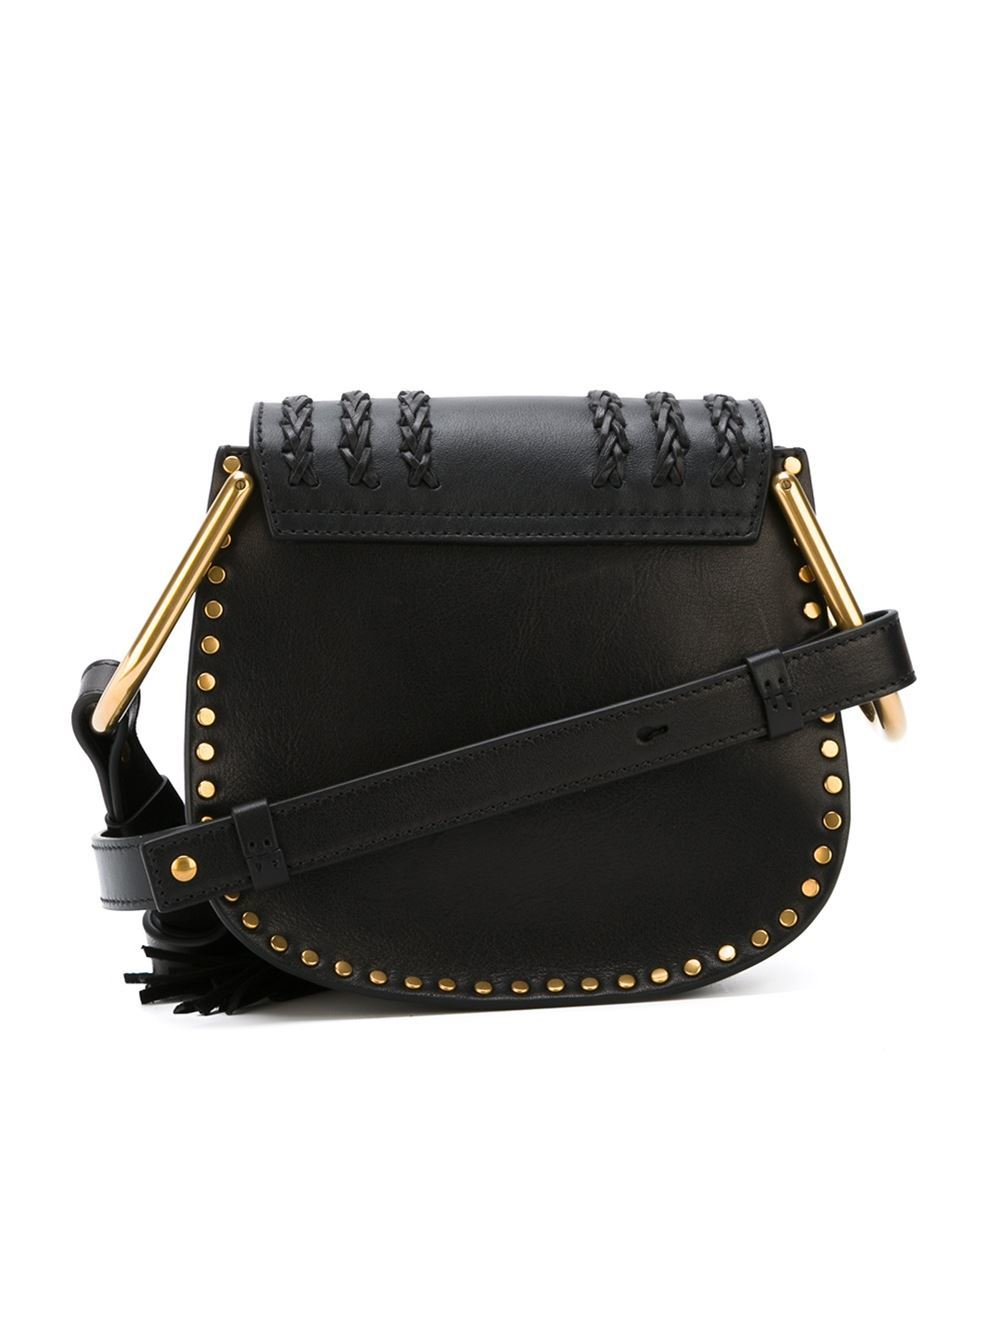 Chlo�� Mini \u0026#39;hudson\u0026#39; Shoulder Bag in Black | Lyst